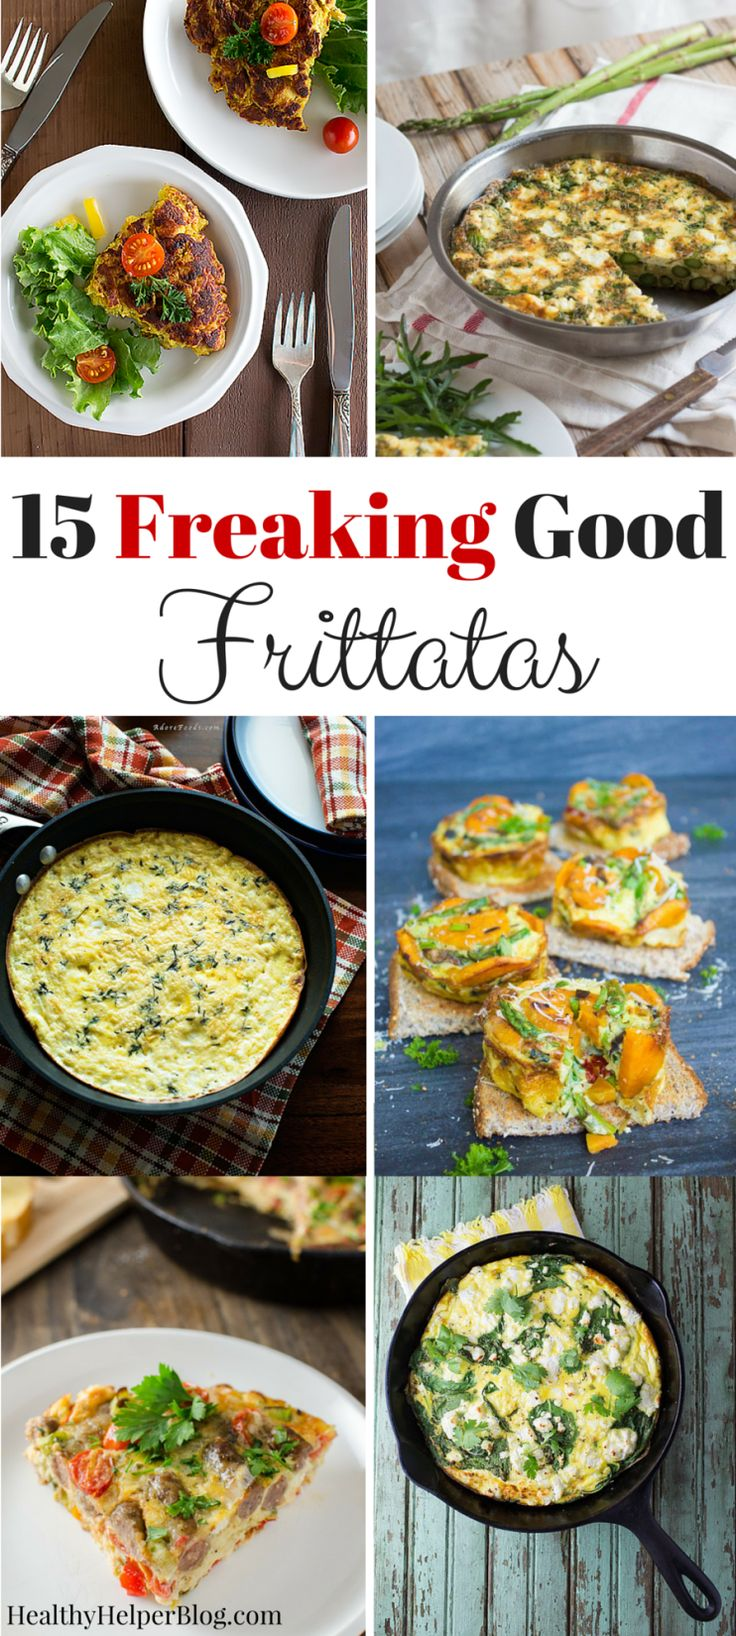 15 Freaking Good Frittatas from Healthy Helper...the most tasty frittata recipes from around the web! Vegan, vegetarian, meat-lovers, and everything in between! Savory sensations for breakfast, lunch, or dinner. [meals, healthy food, recipes, healthy, eggs, frittata, vegetables, gluten-free, paleo, bacon]